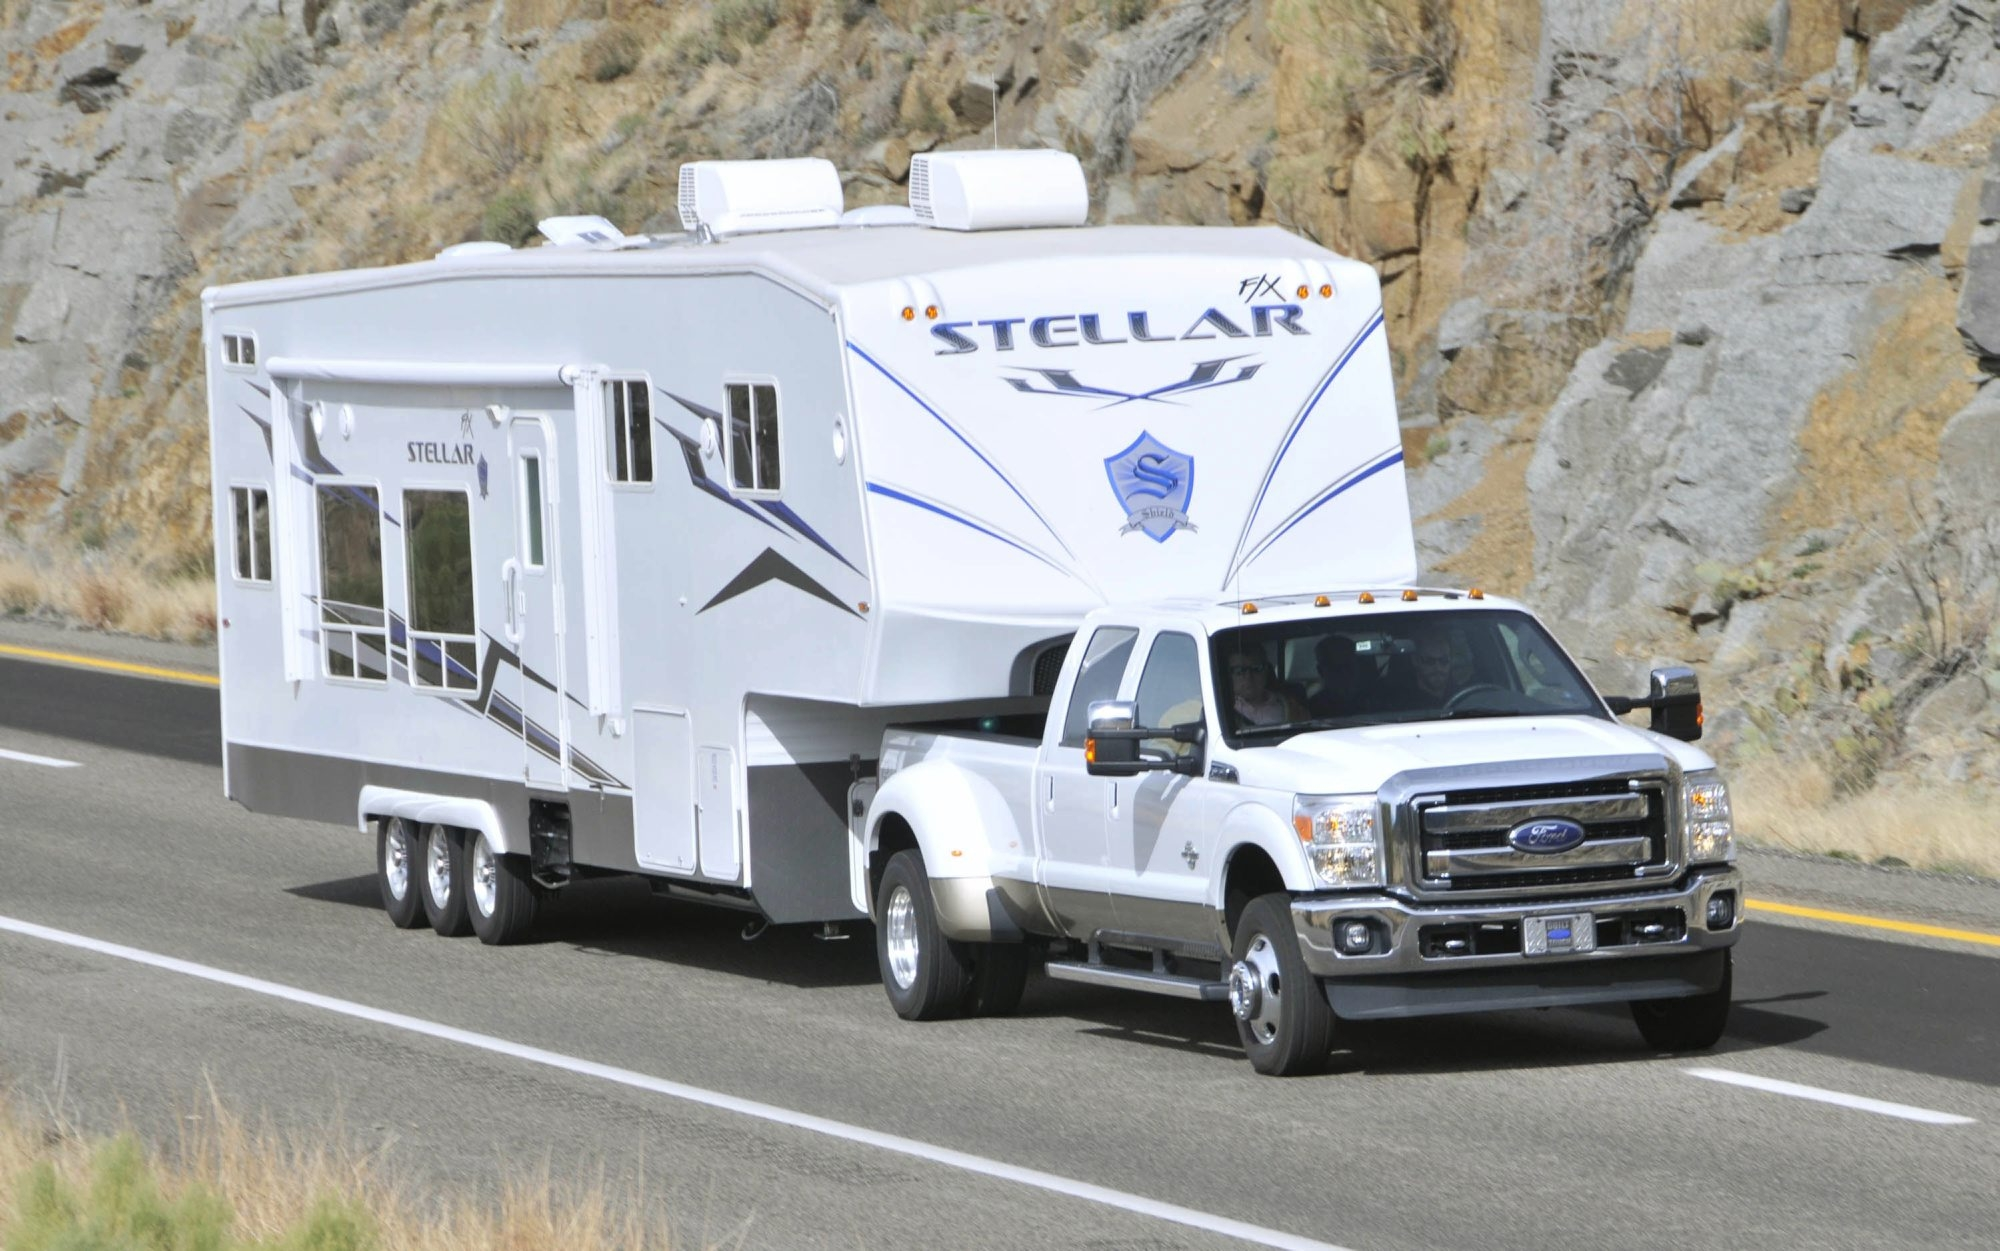 The sale of campers and towable trailers has bounced back since the Great Recession, and KOA is launching an ad campaign to appeal to the new owners.